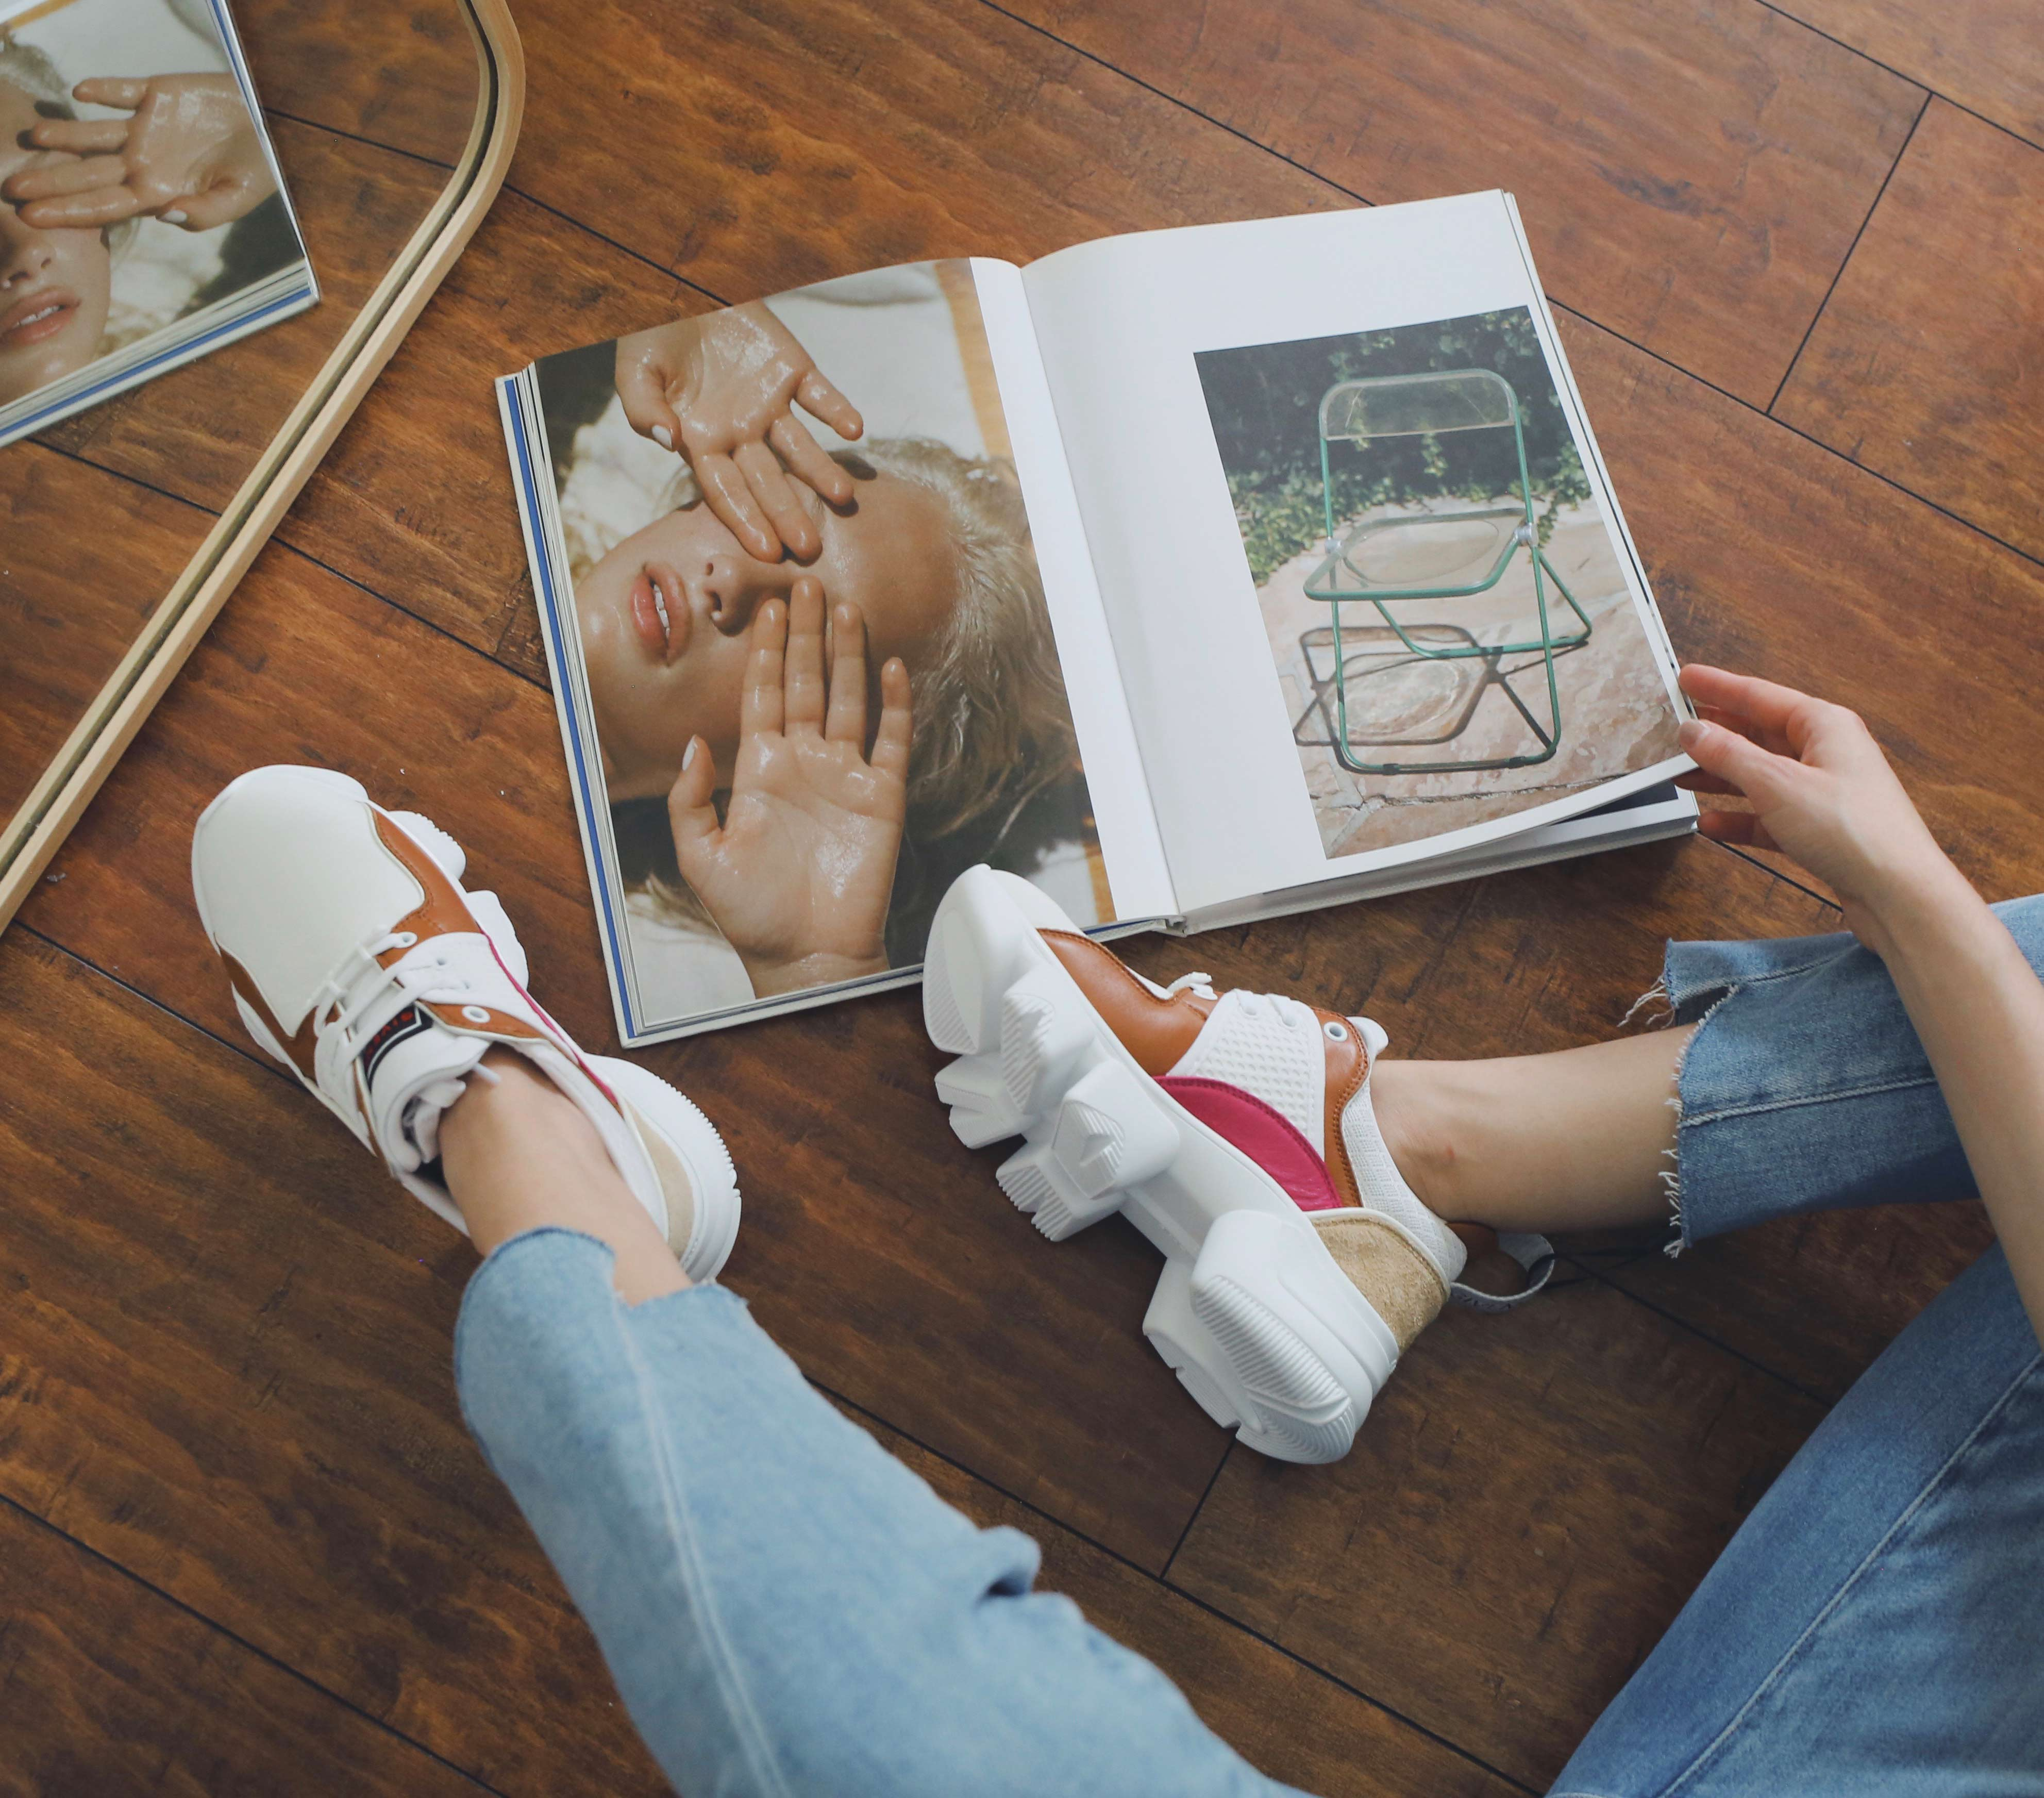 5 best Fall Winter 2019 shoes and boots trends: crocodile embossed boots, square toe shoes, combat boots, loose boots, animal print shoes, dad sneakers. givenchy jaw sneakers / luxury sneakers